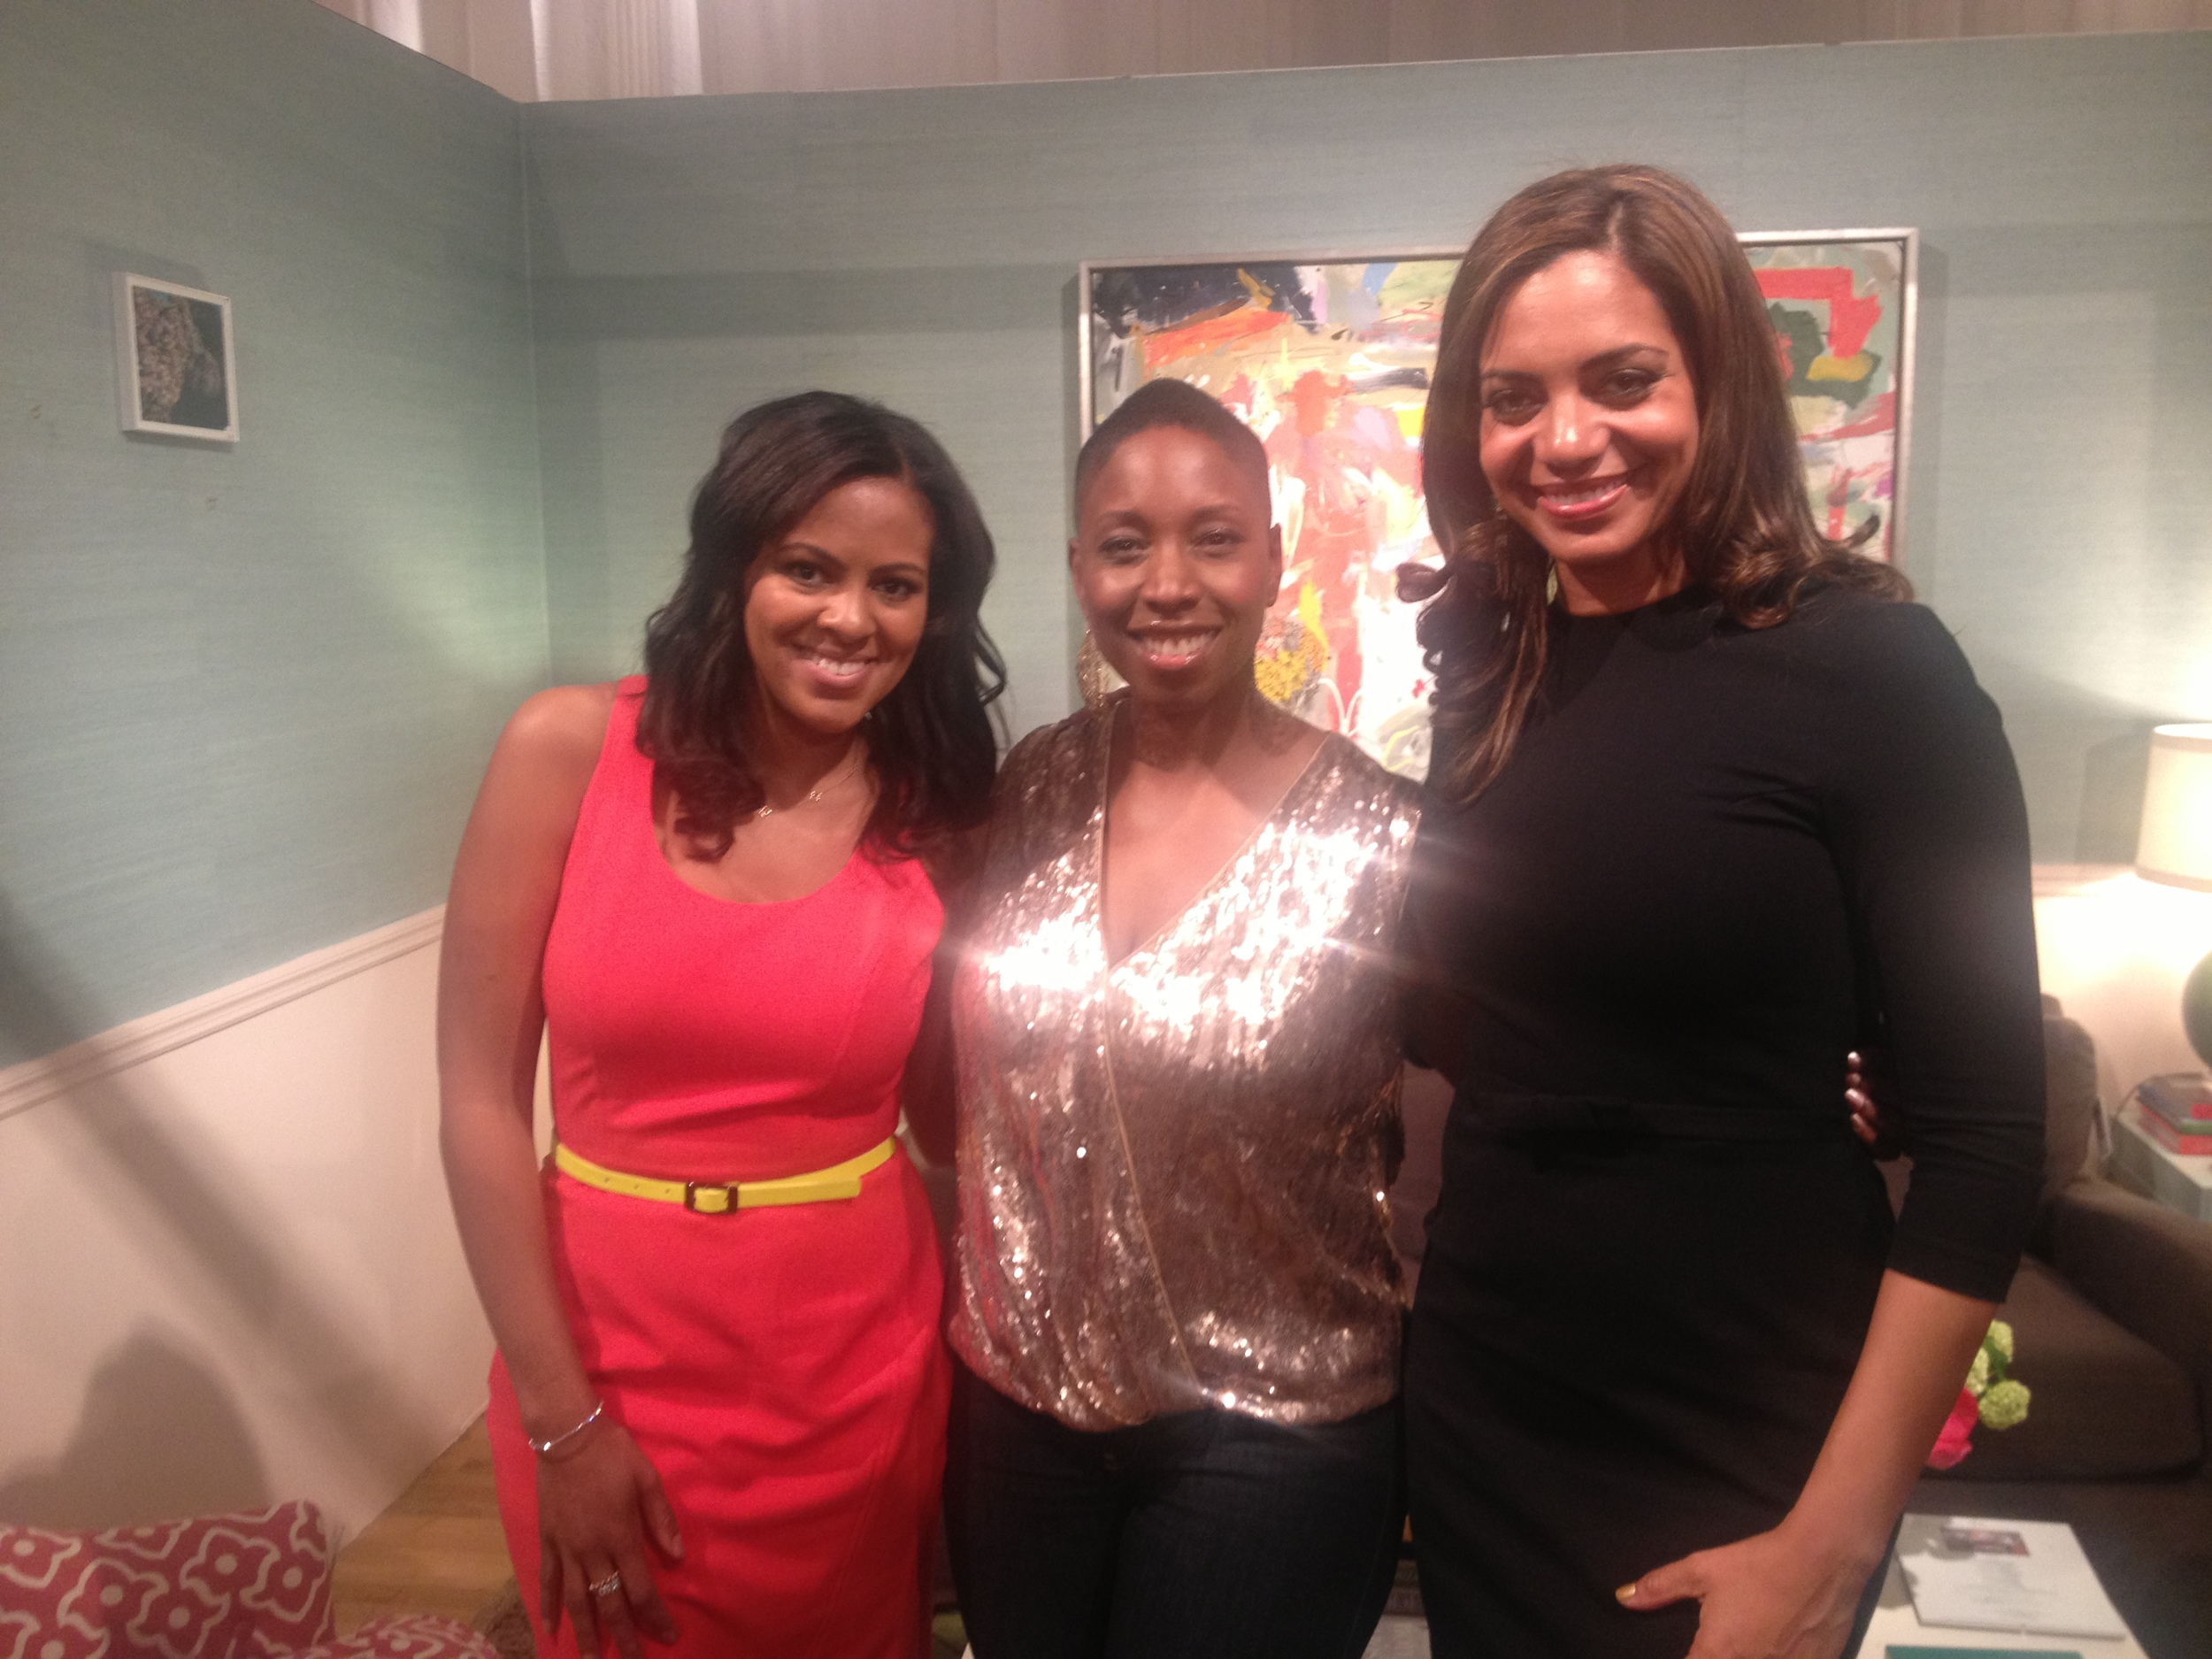 Nicole Gibbons, Malene Barnett, and me in Nicole's classic space. Amazing how so many relationships were solidified here.